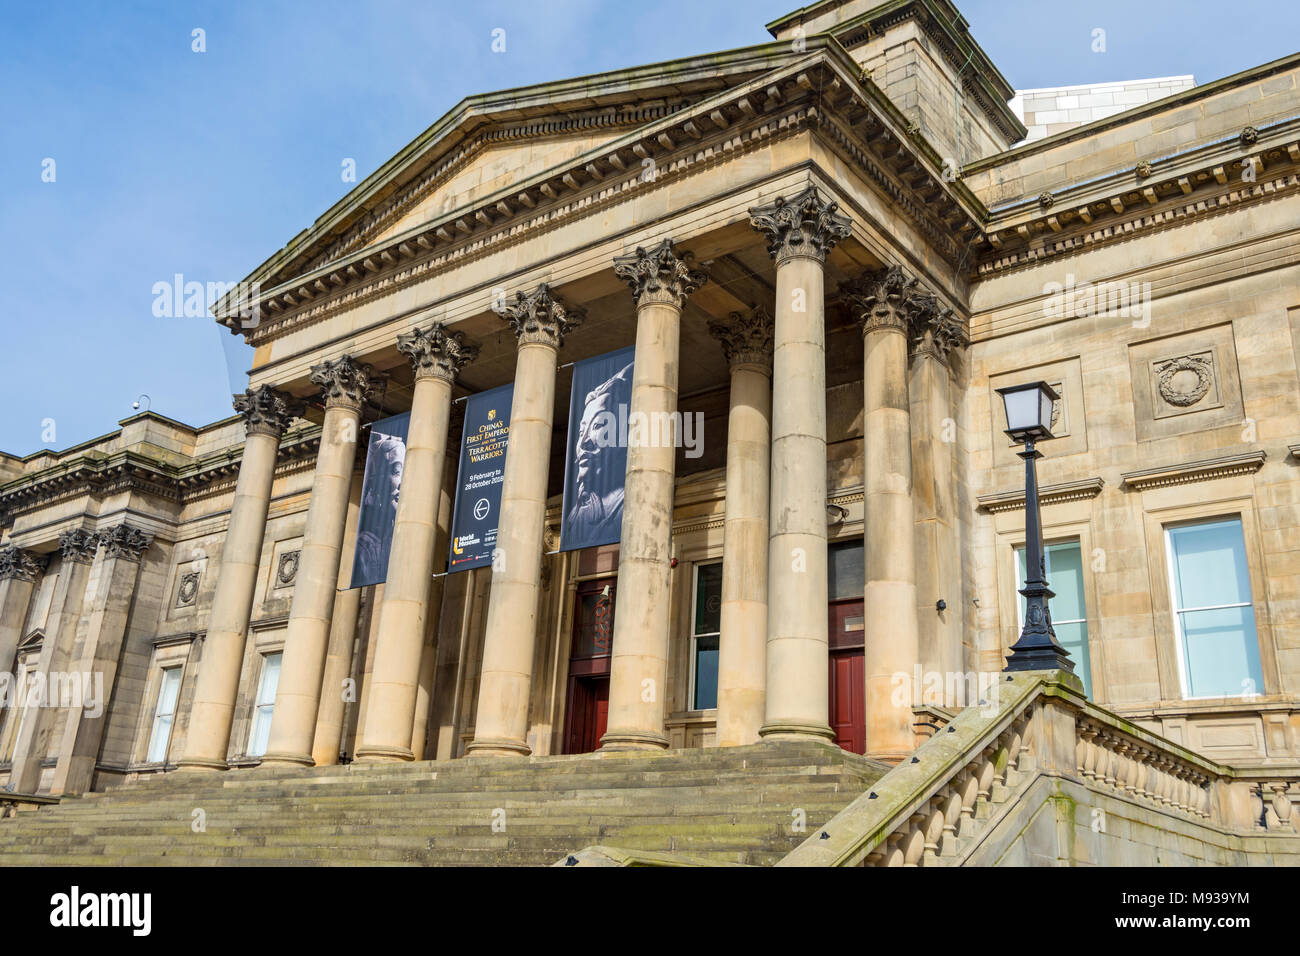 Entrance to the World Museum. William Brown Street, Liverpool, England, UK - Stock Image